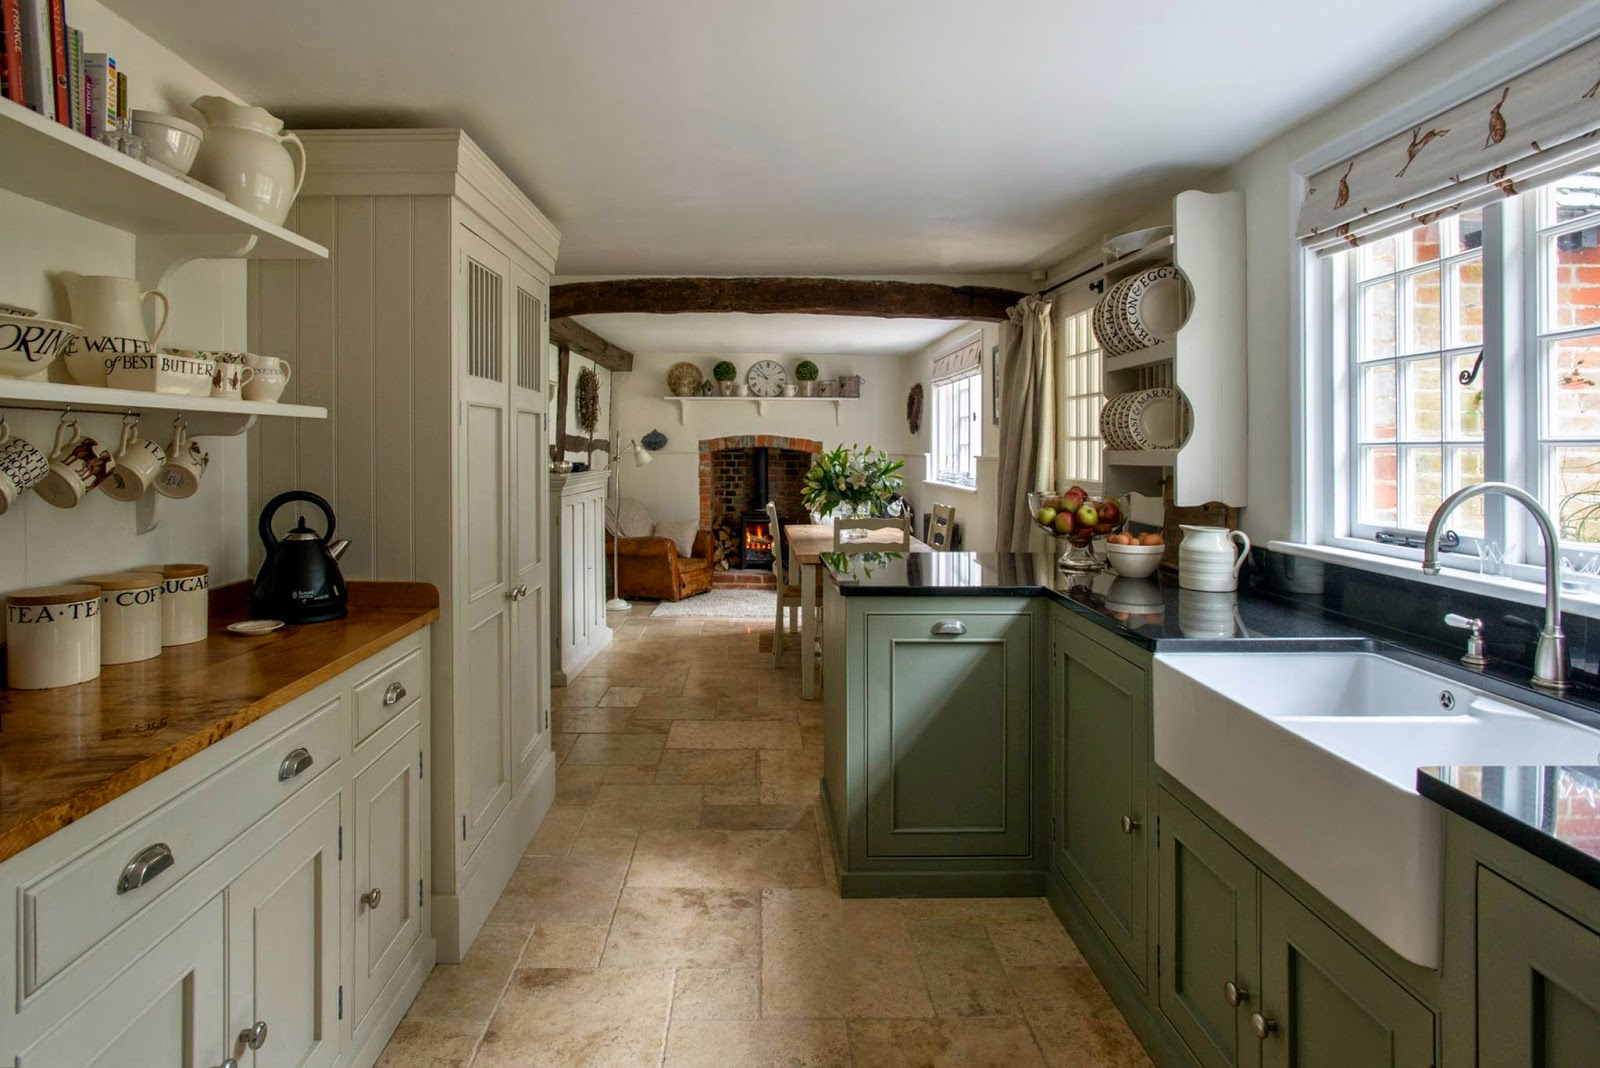 Modern Country Kitchen how to blend modern and country styles within your home's decor